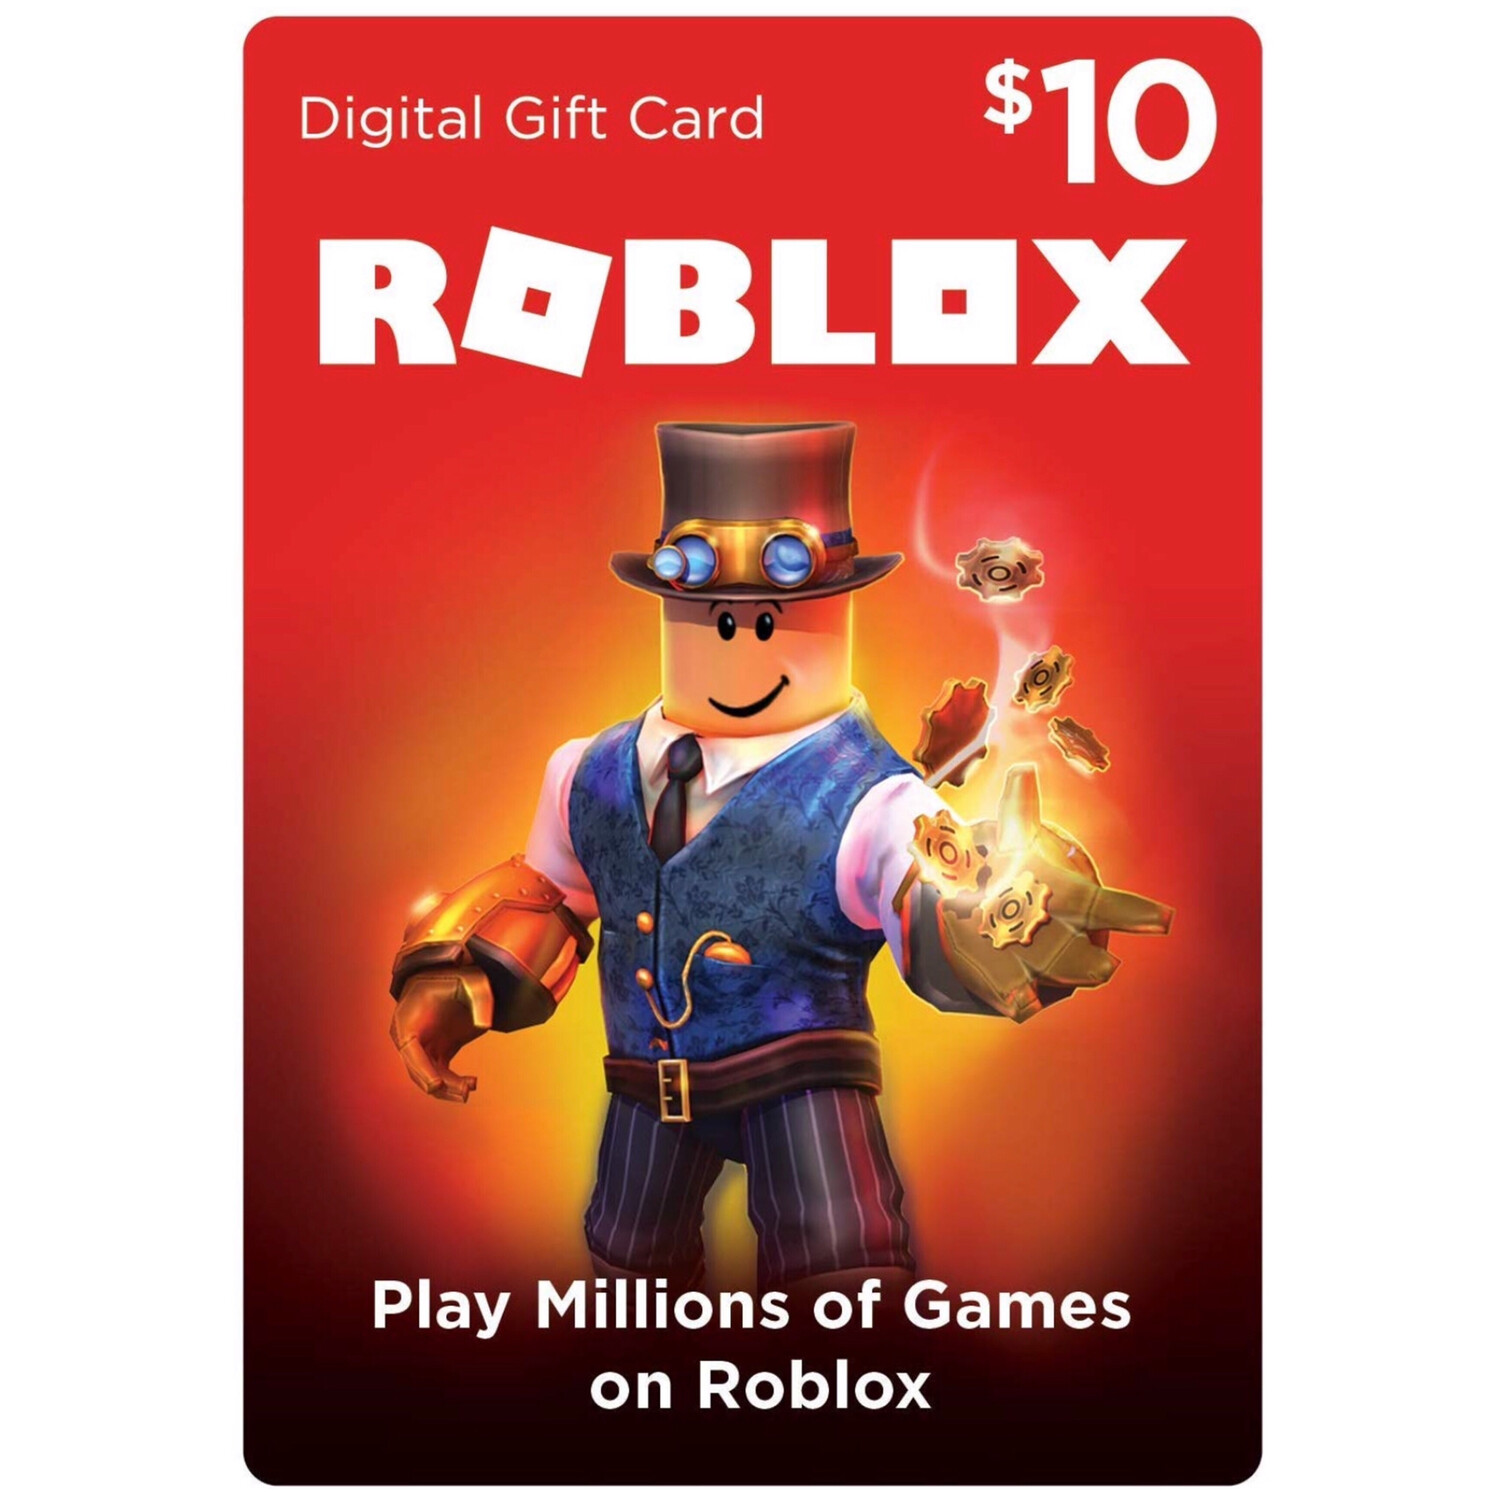 Roblox $10 Game Card 800 Robux [Digital Code]